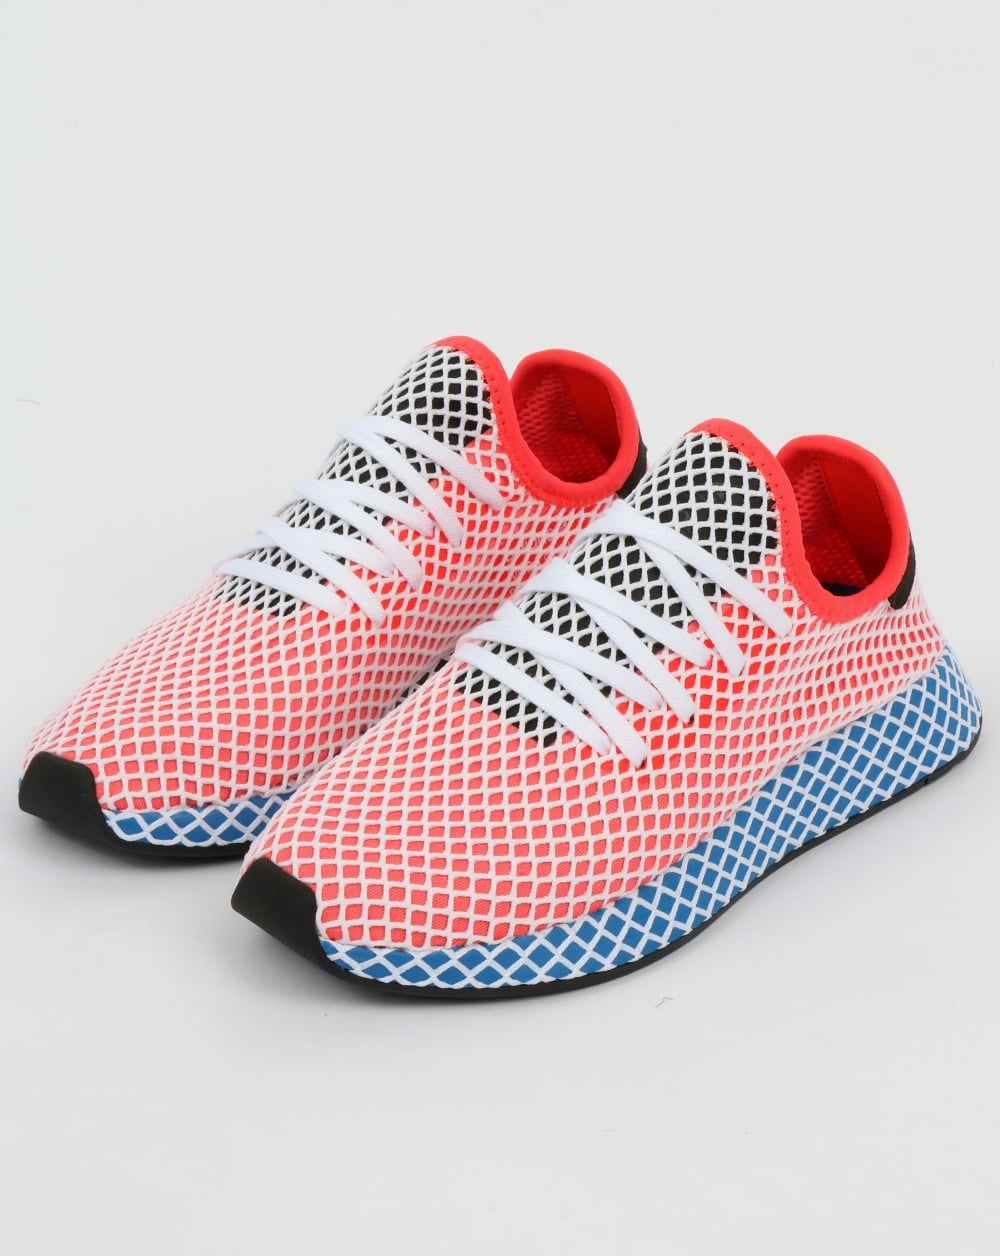 168f252a46a adidas Trainers Adidas Deerupt Runner Trainers Solar Red Bluebird